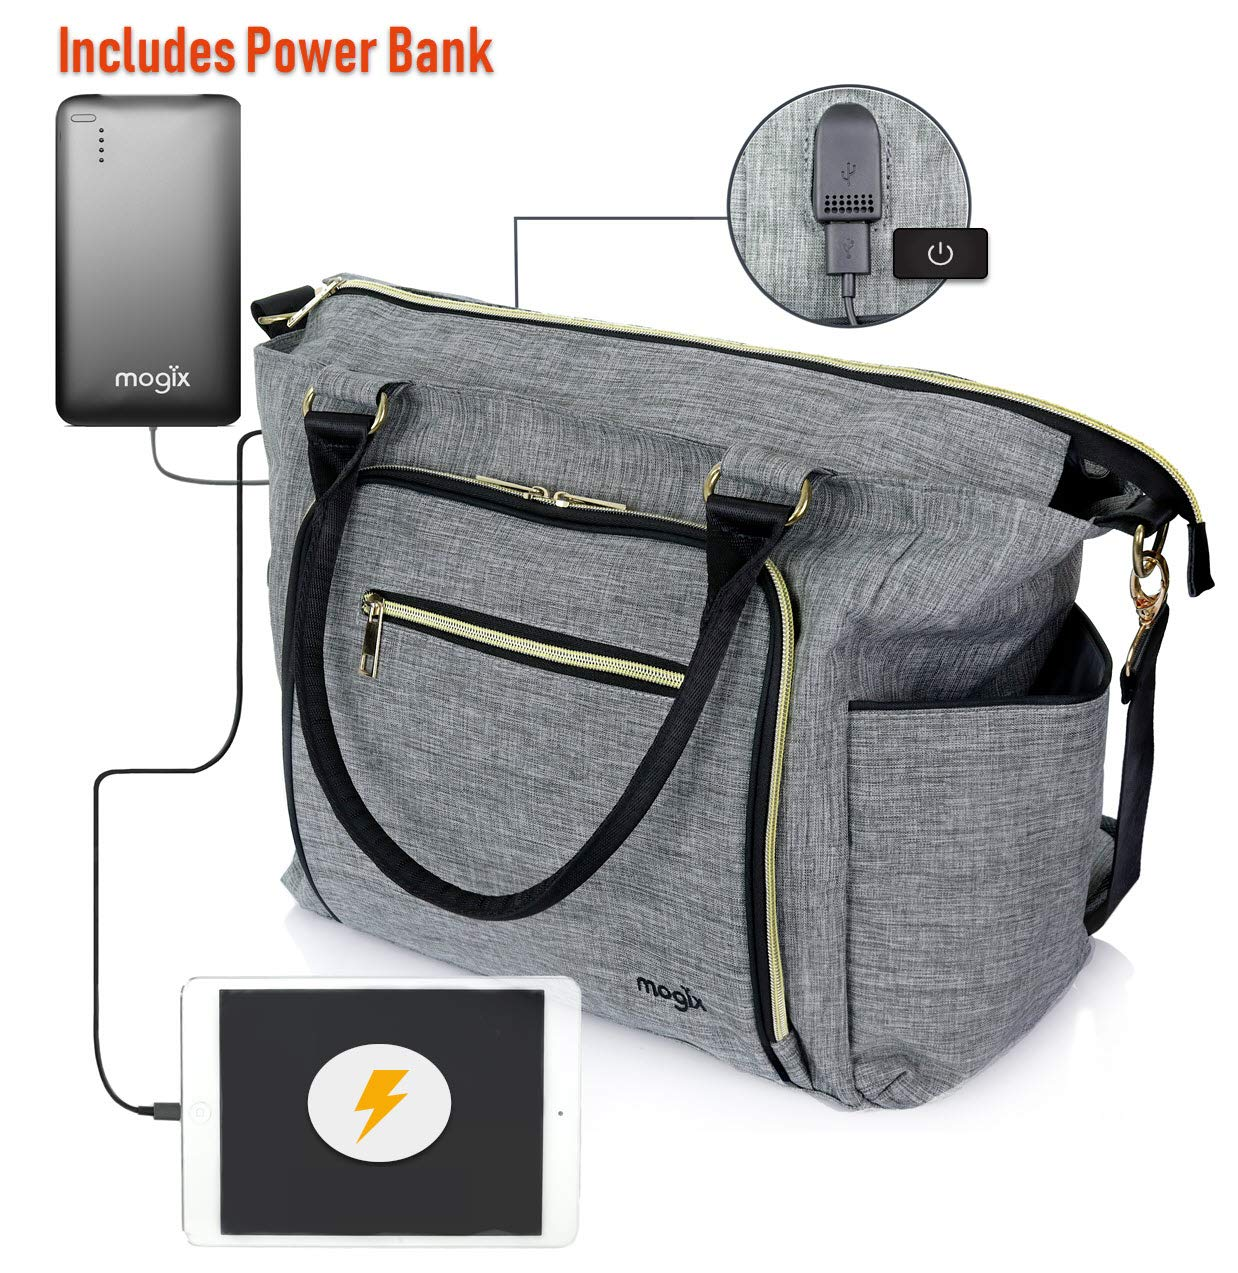 Smart Baby Diaper Bag with Portable Phone Charger, Changing Pad, Wet Dry Bag – Large Tote, Unisex, Best for Rechargeable Breast Pump and Travel